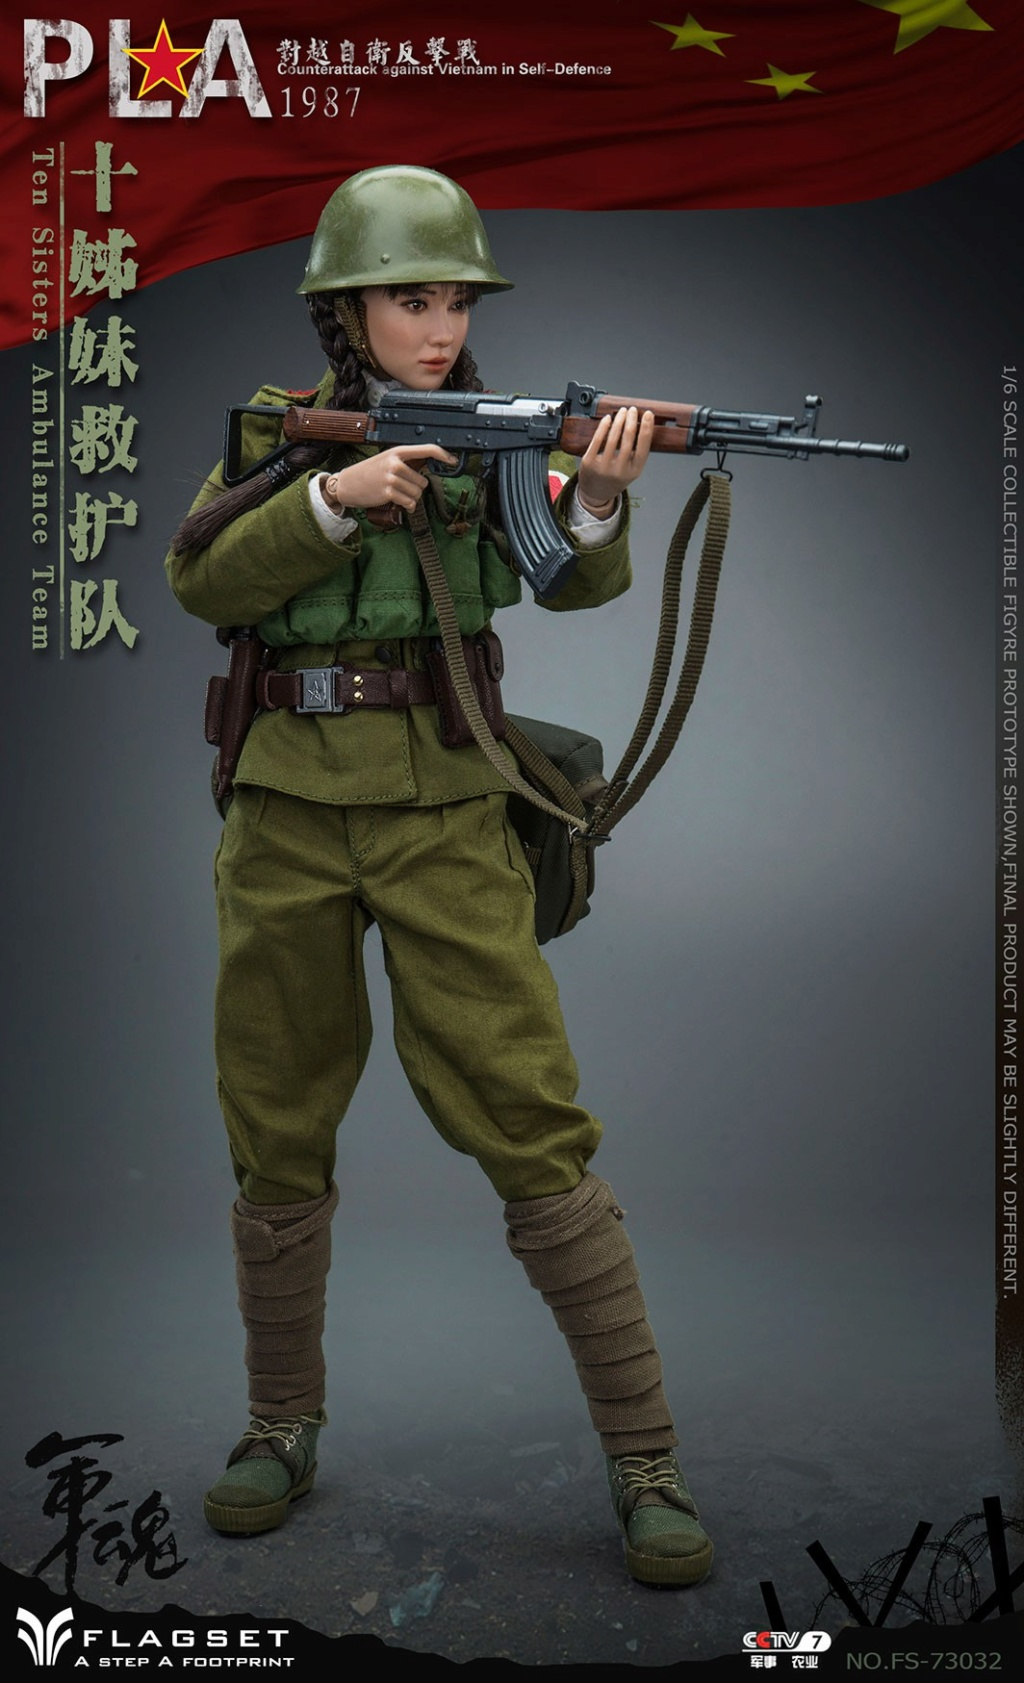 CounterAttack - NEW PRODUCT: Flagset: 1/6 counterattack against Vietnam-female soldiers of the ten sisters rescue team of the Chinese People's Liberation Army (FS73032#) 06535711